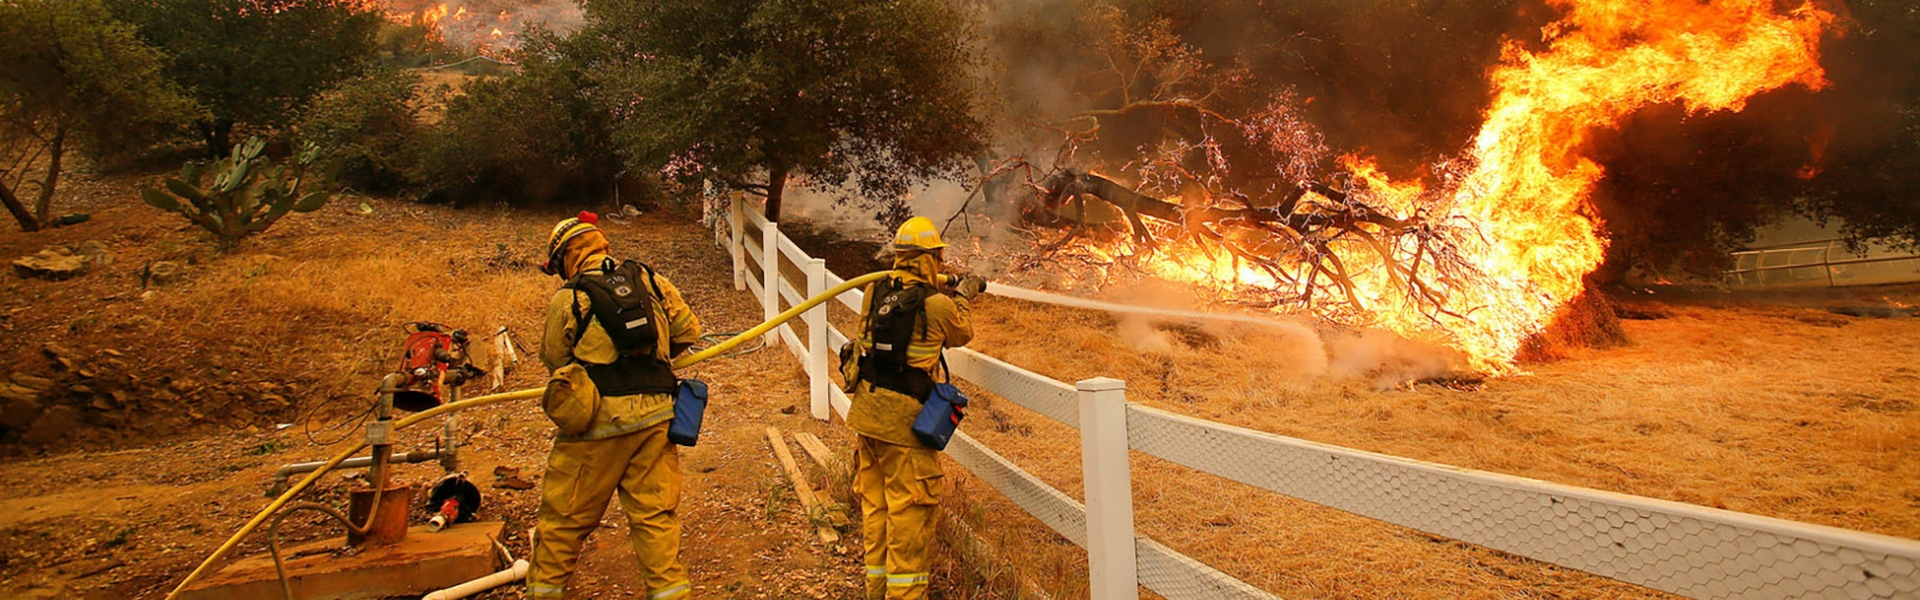 Firefighters combating wildfire perimeter with hoses